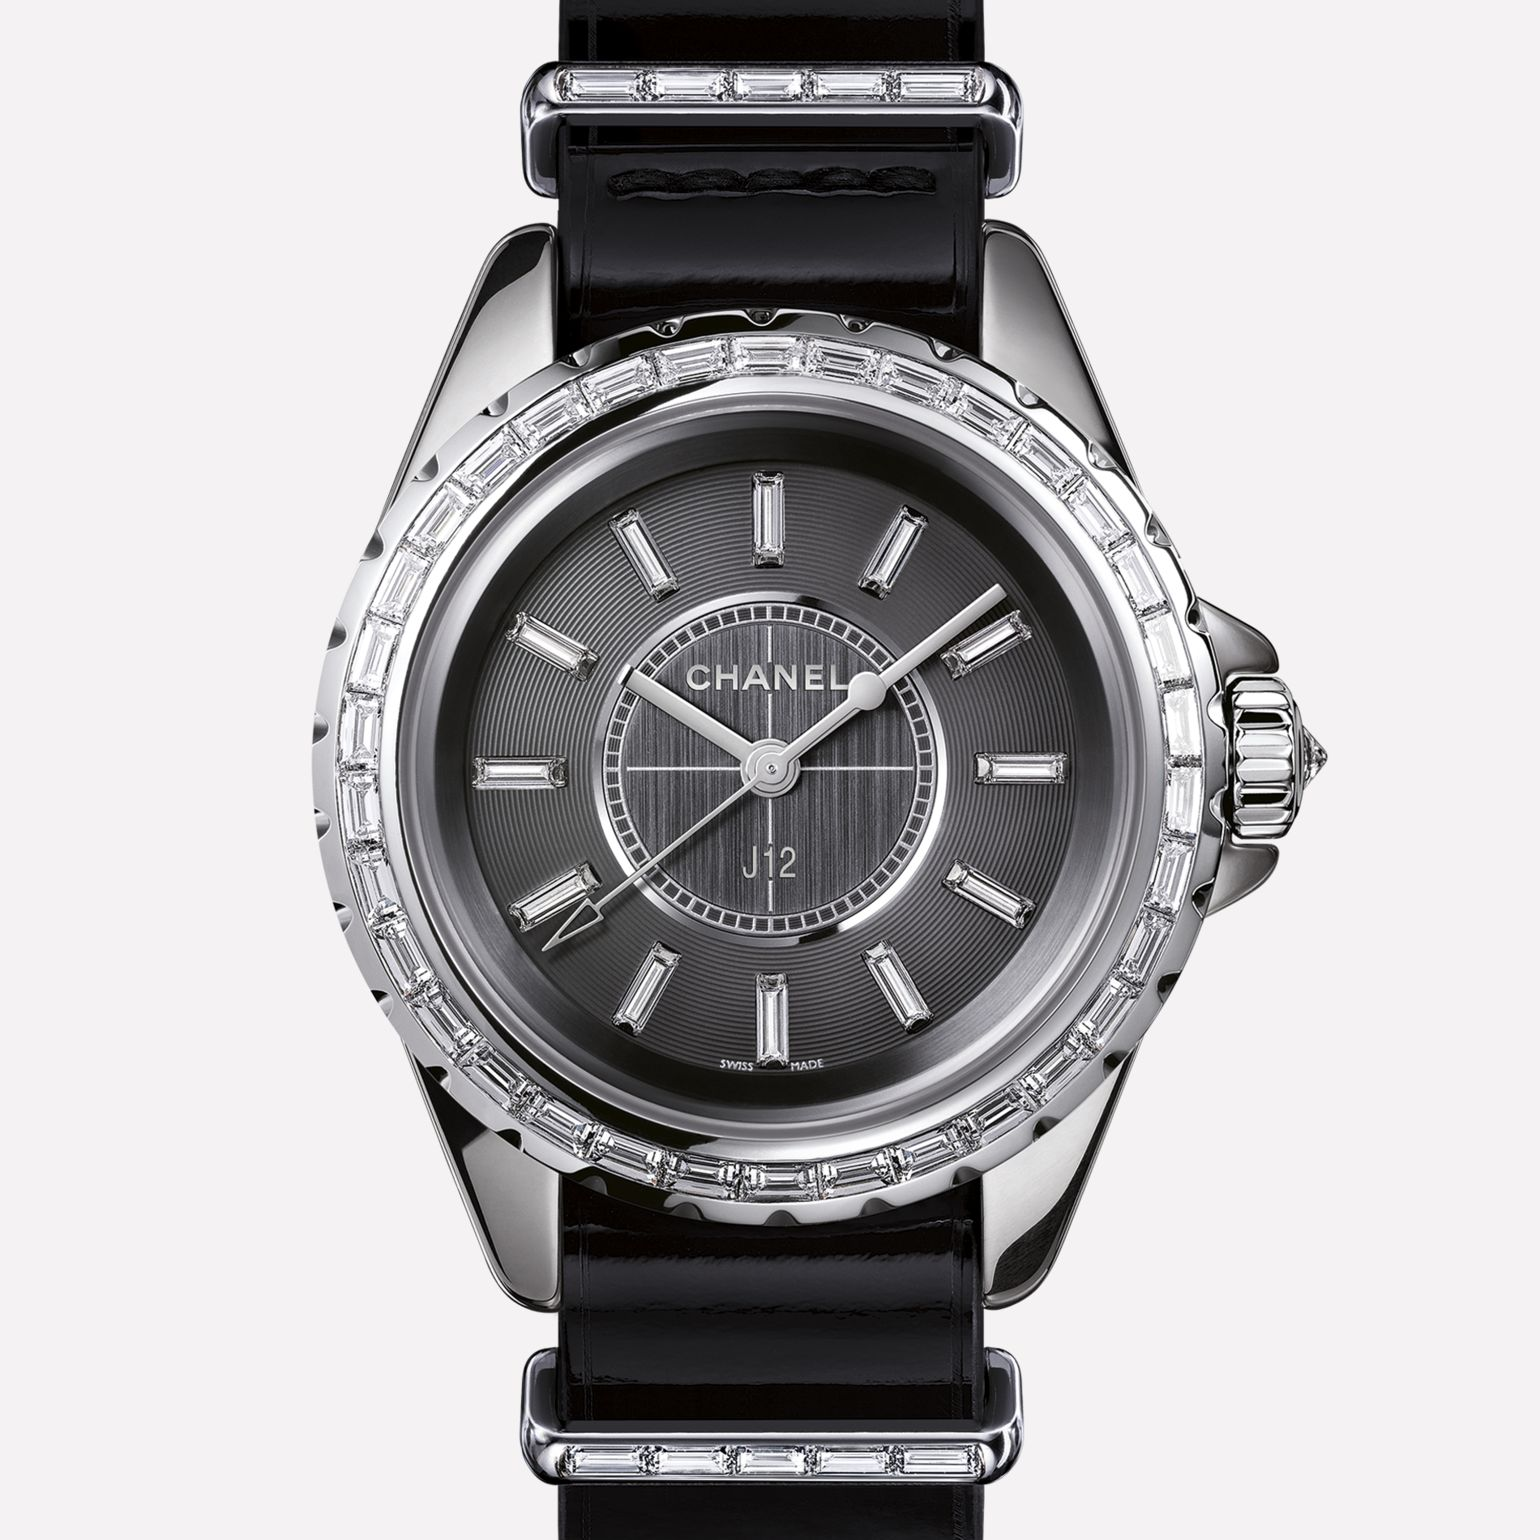 J12-G10 Jewellery Watch Titanium ceramic and white gold, bezel and indicators with baguette cut diamonds